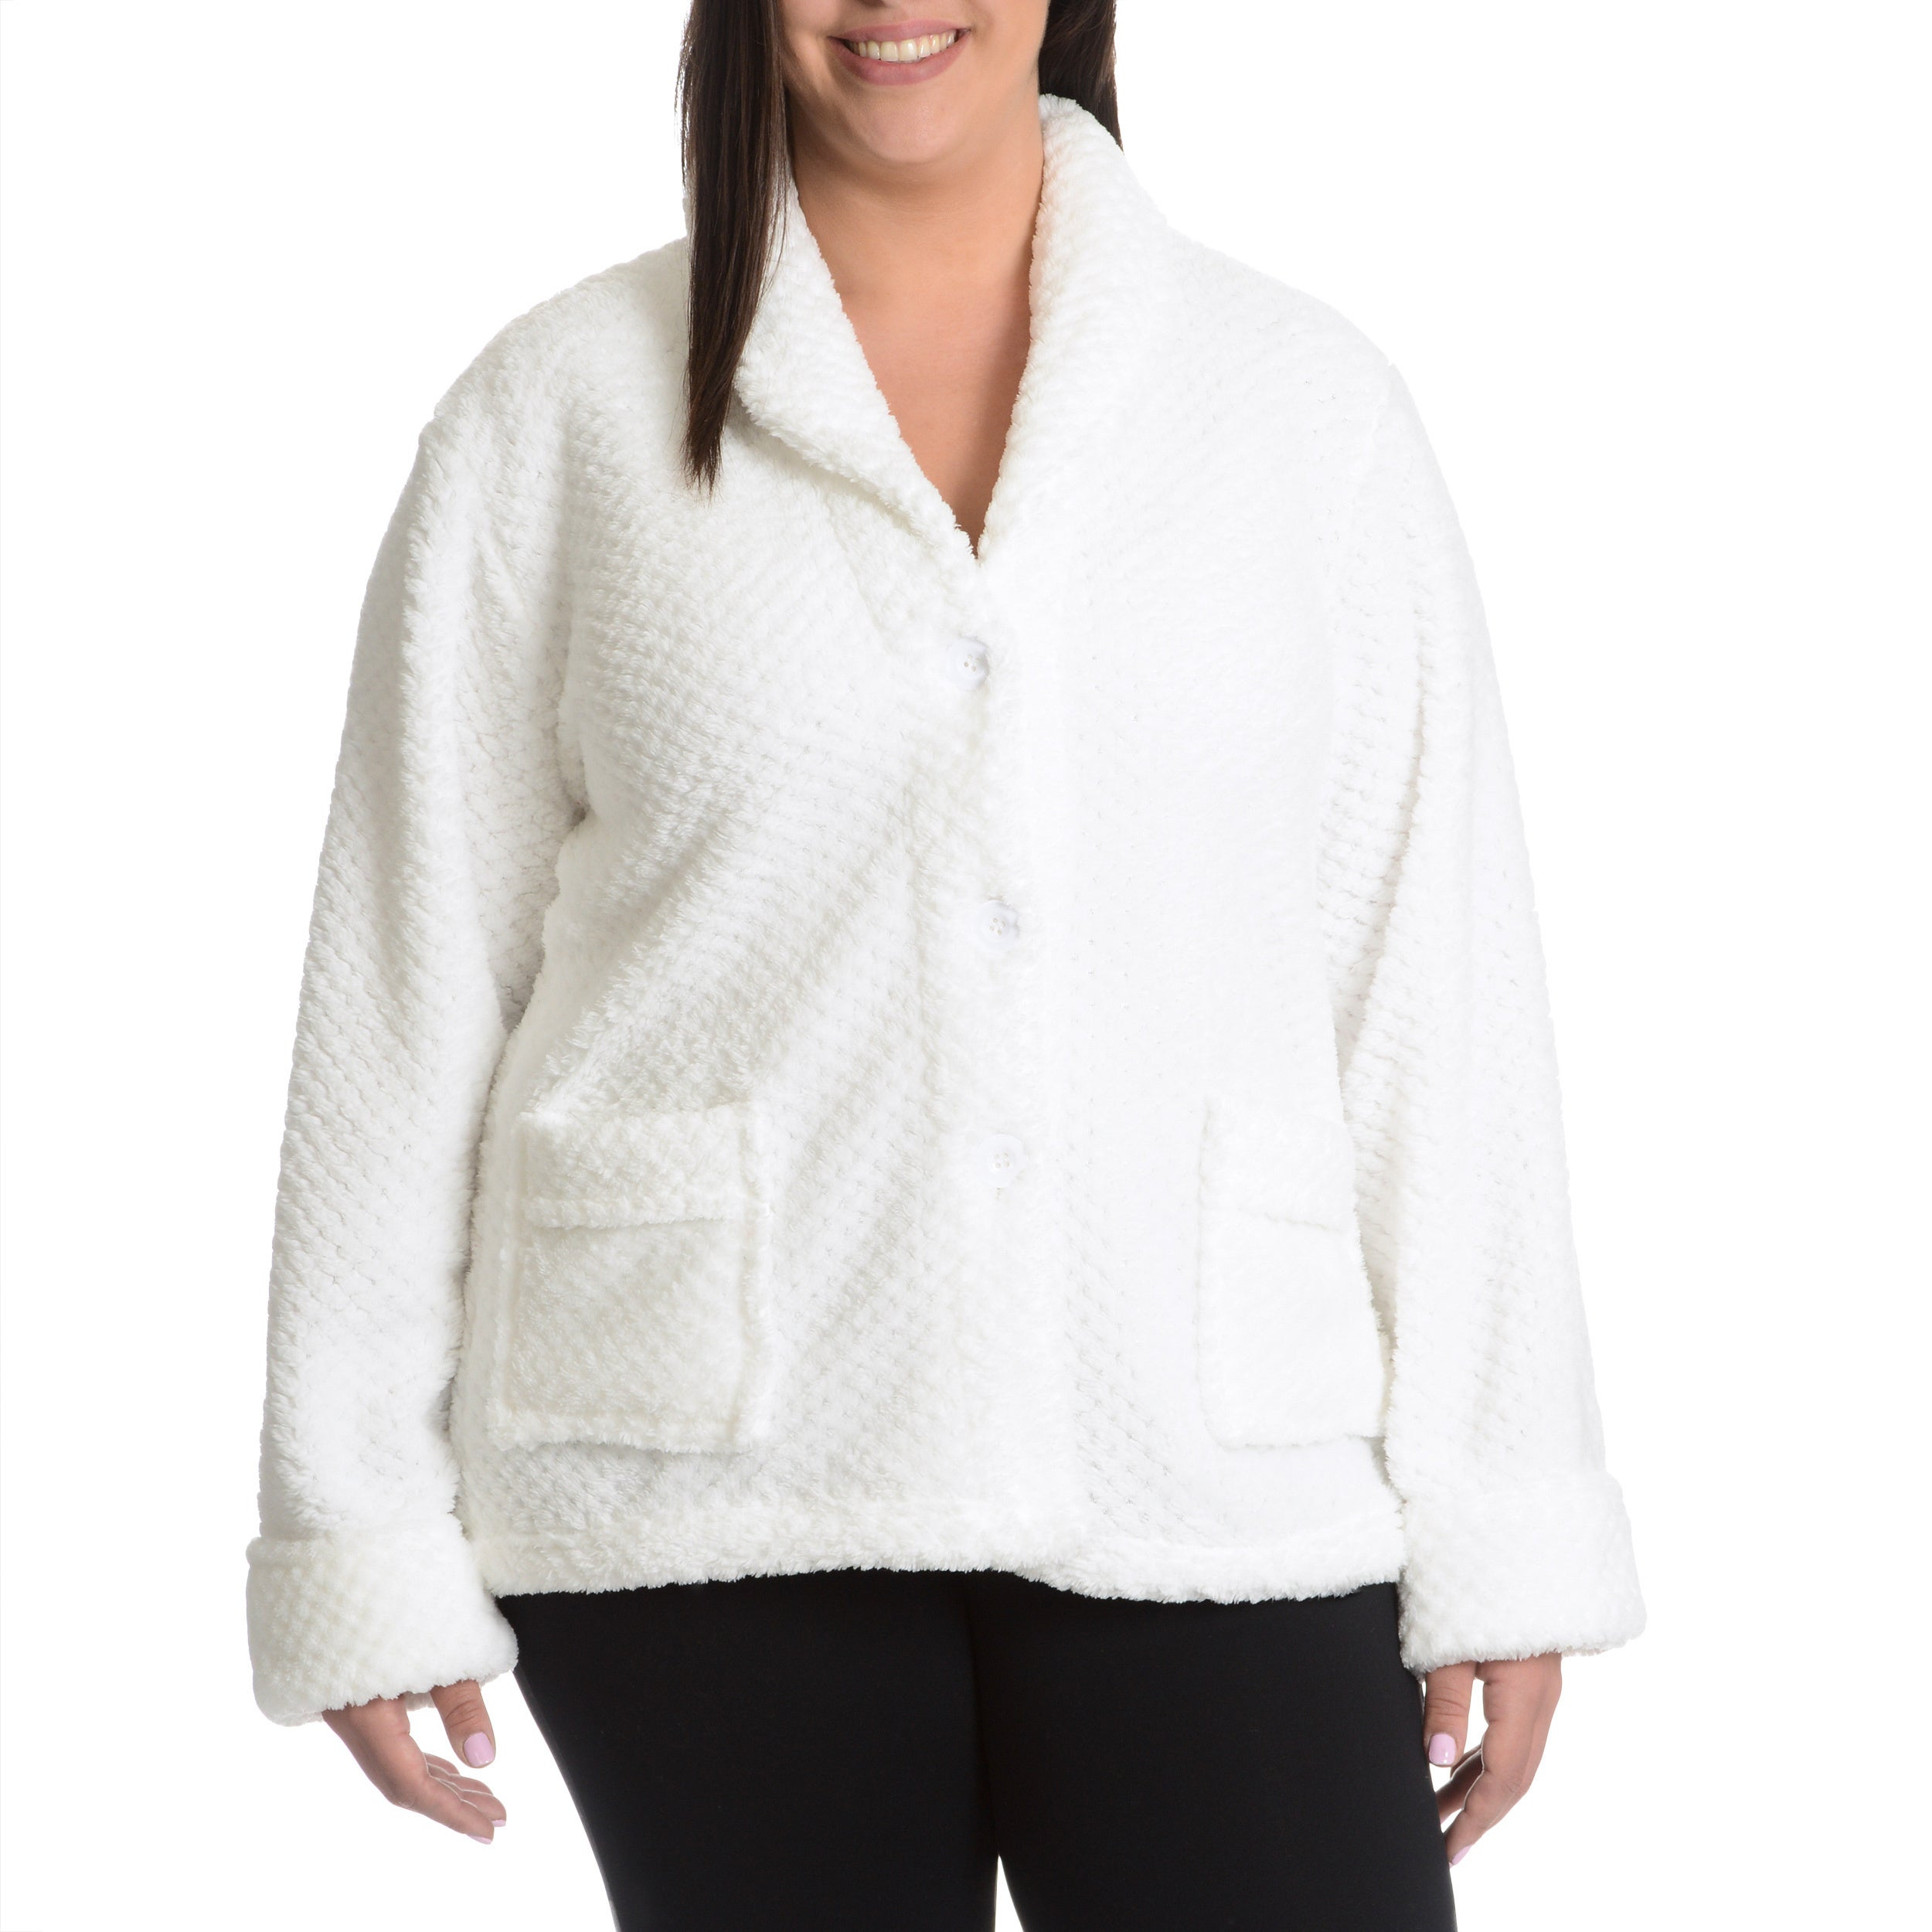 c5775800d71 Shop La Cera Women s Plus Size Textured Plush Button Front Sleep Shirt -  Free Shipping Today - Overstock - 10422936